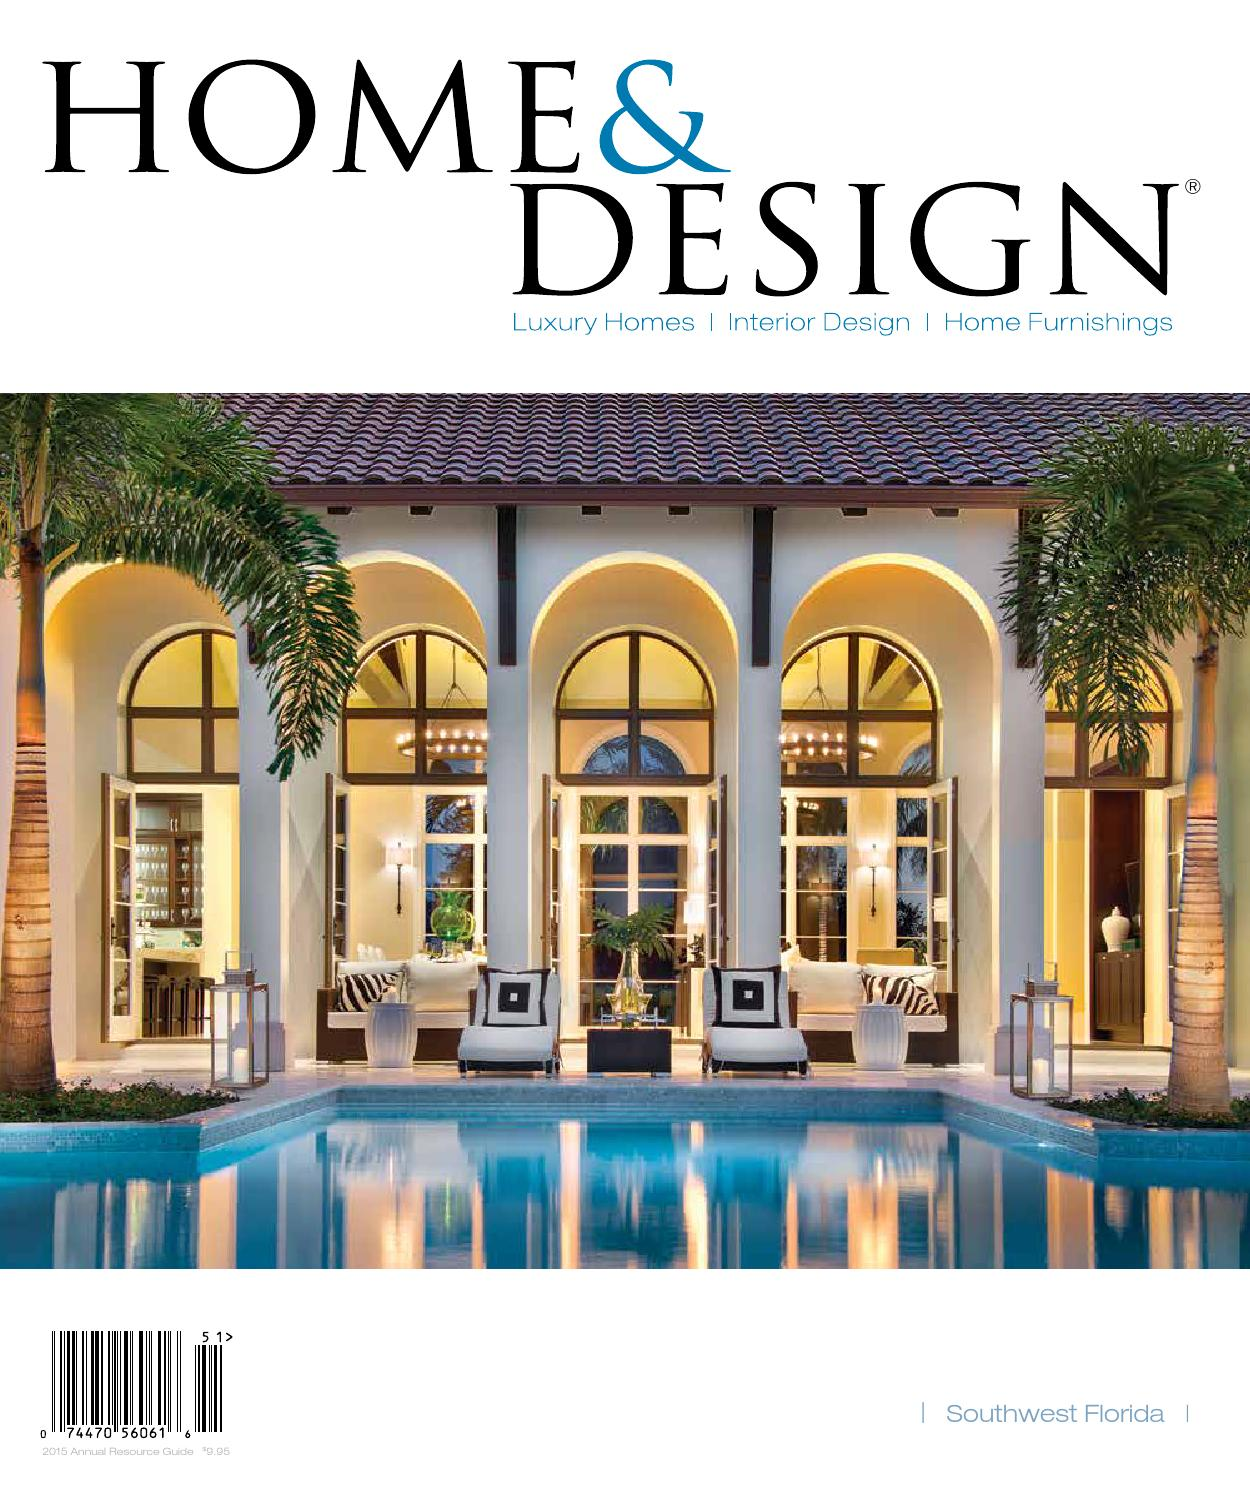 Home Design Magazine Annual Resource Guide 2015 Southwest Florida Edition By Anthony Spano